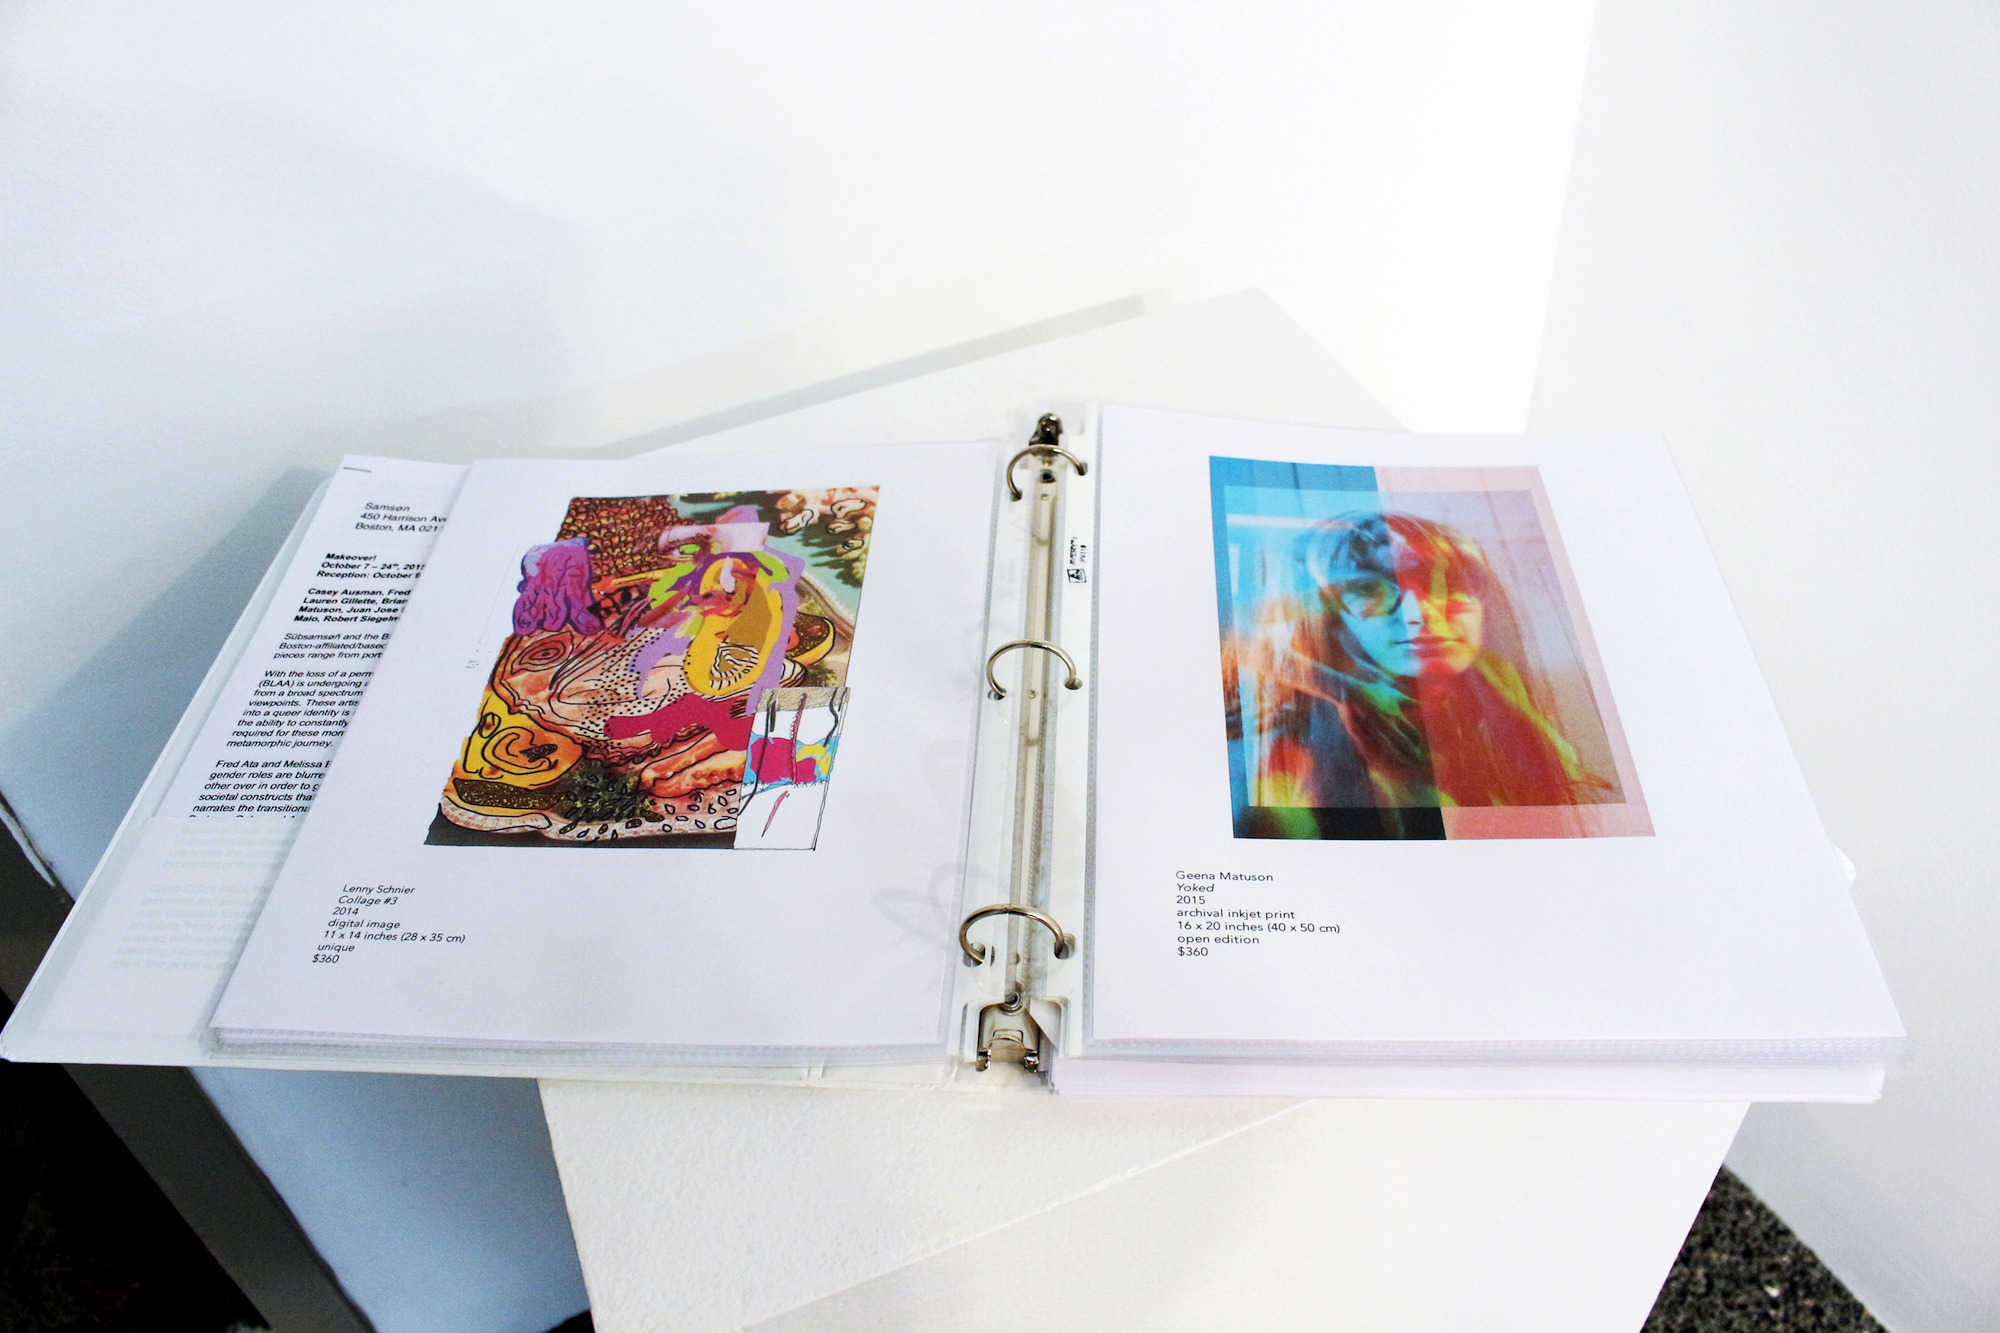 BLAA x Subsamson Makeover! show portfolio, featuring works of (left) Lenny Schnier and (right) Geena Matuson.